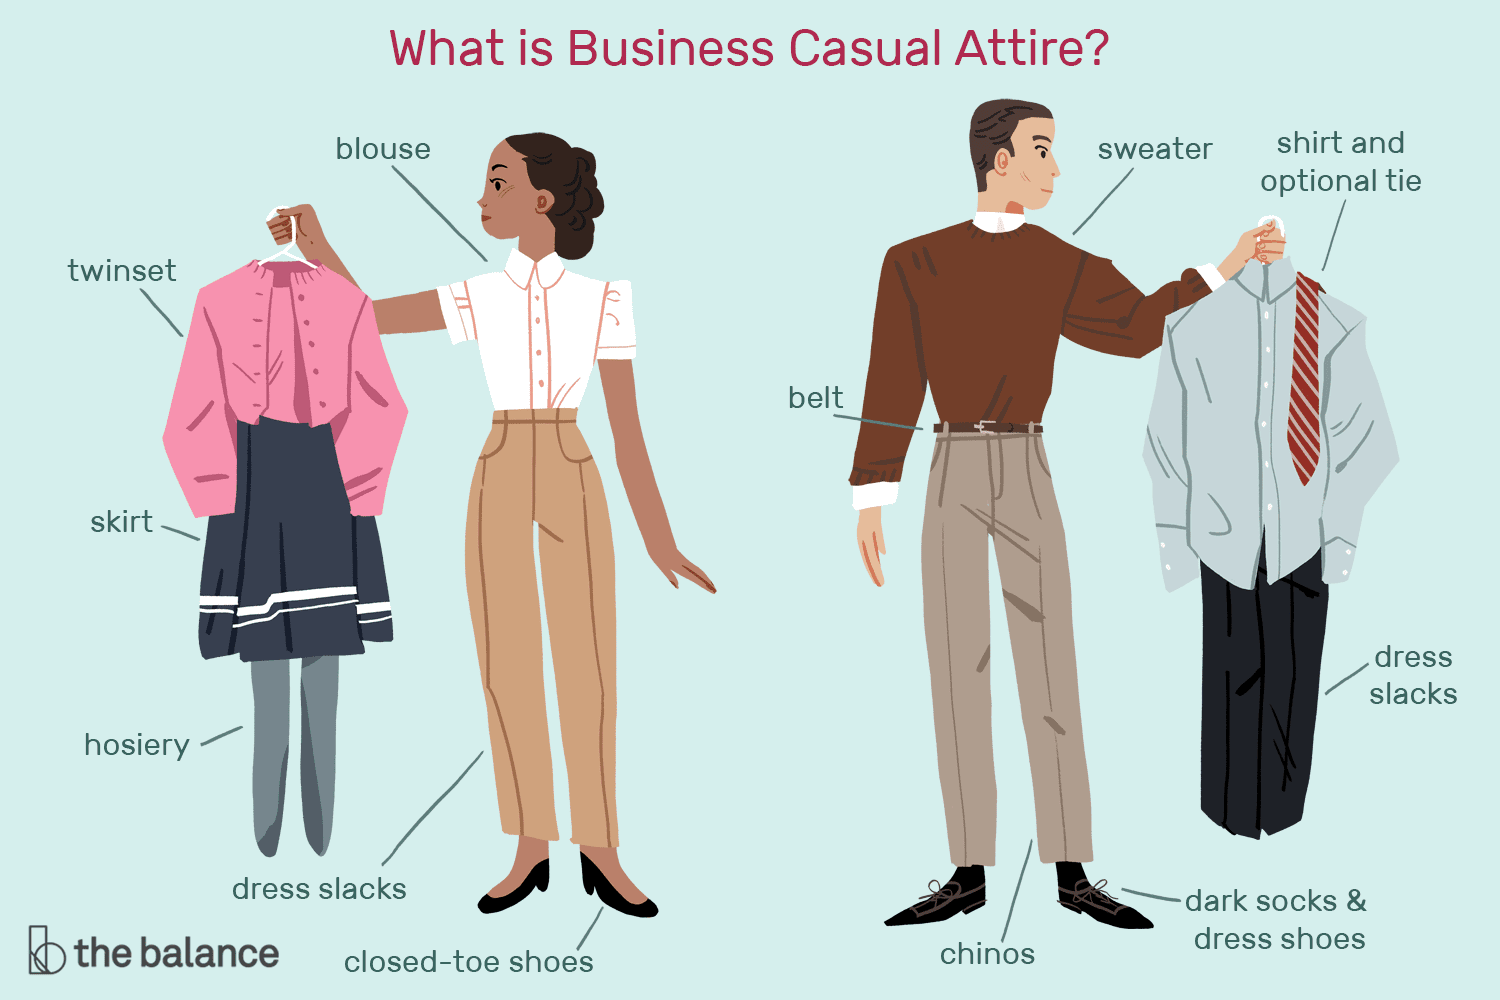 bd9d15a7c125 What Does Business Casual Attire Mean